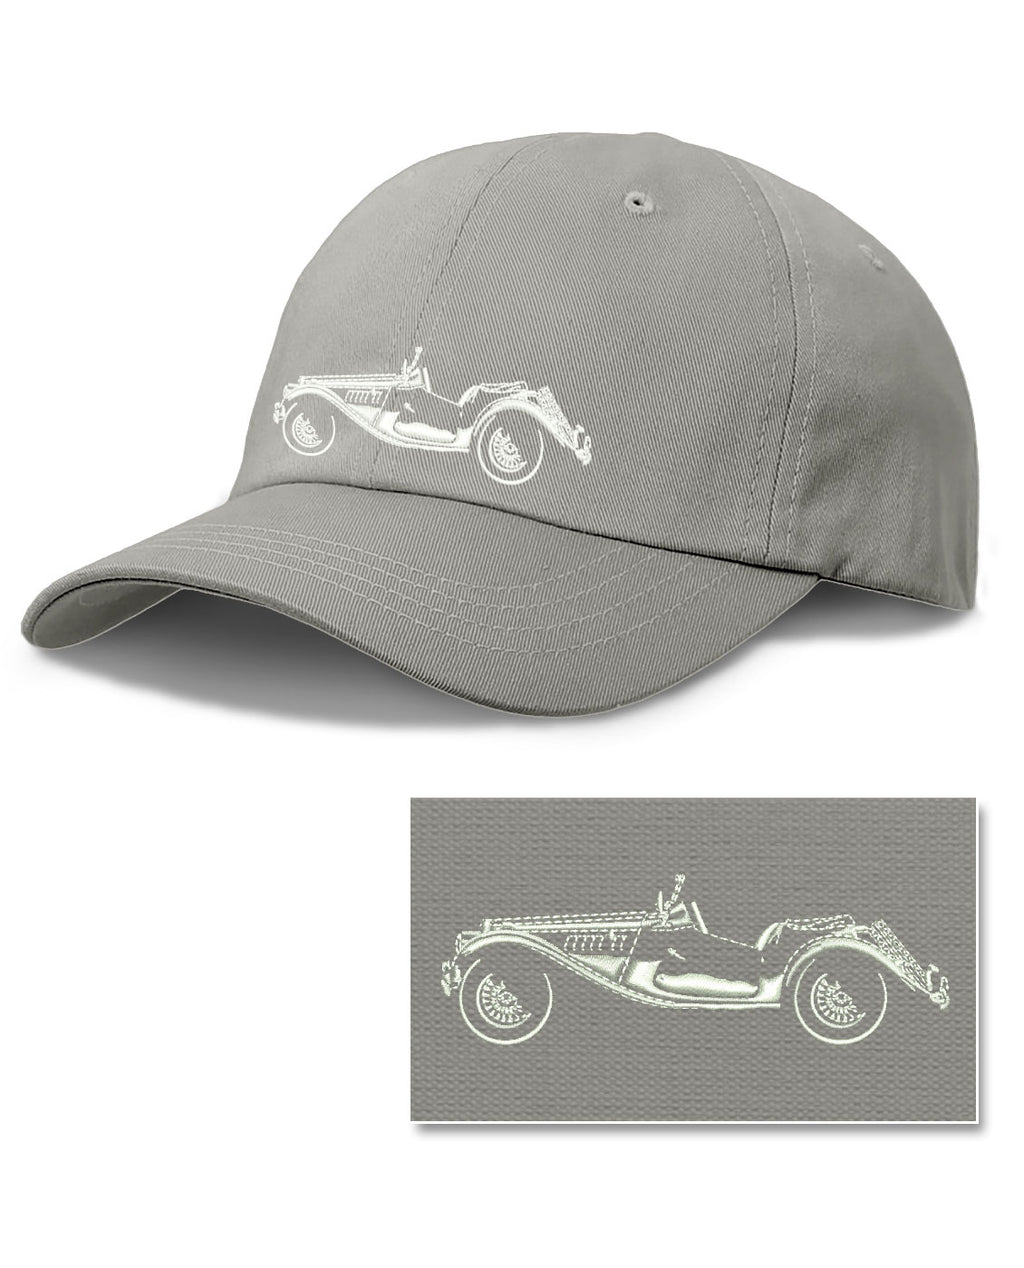 MG TF Roadster Baseball Cap for Men & Women